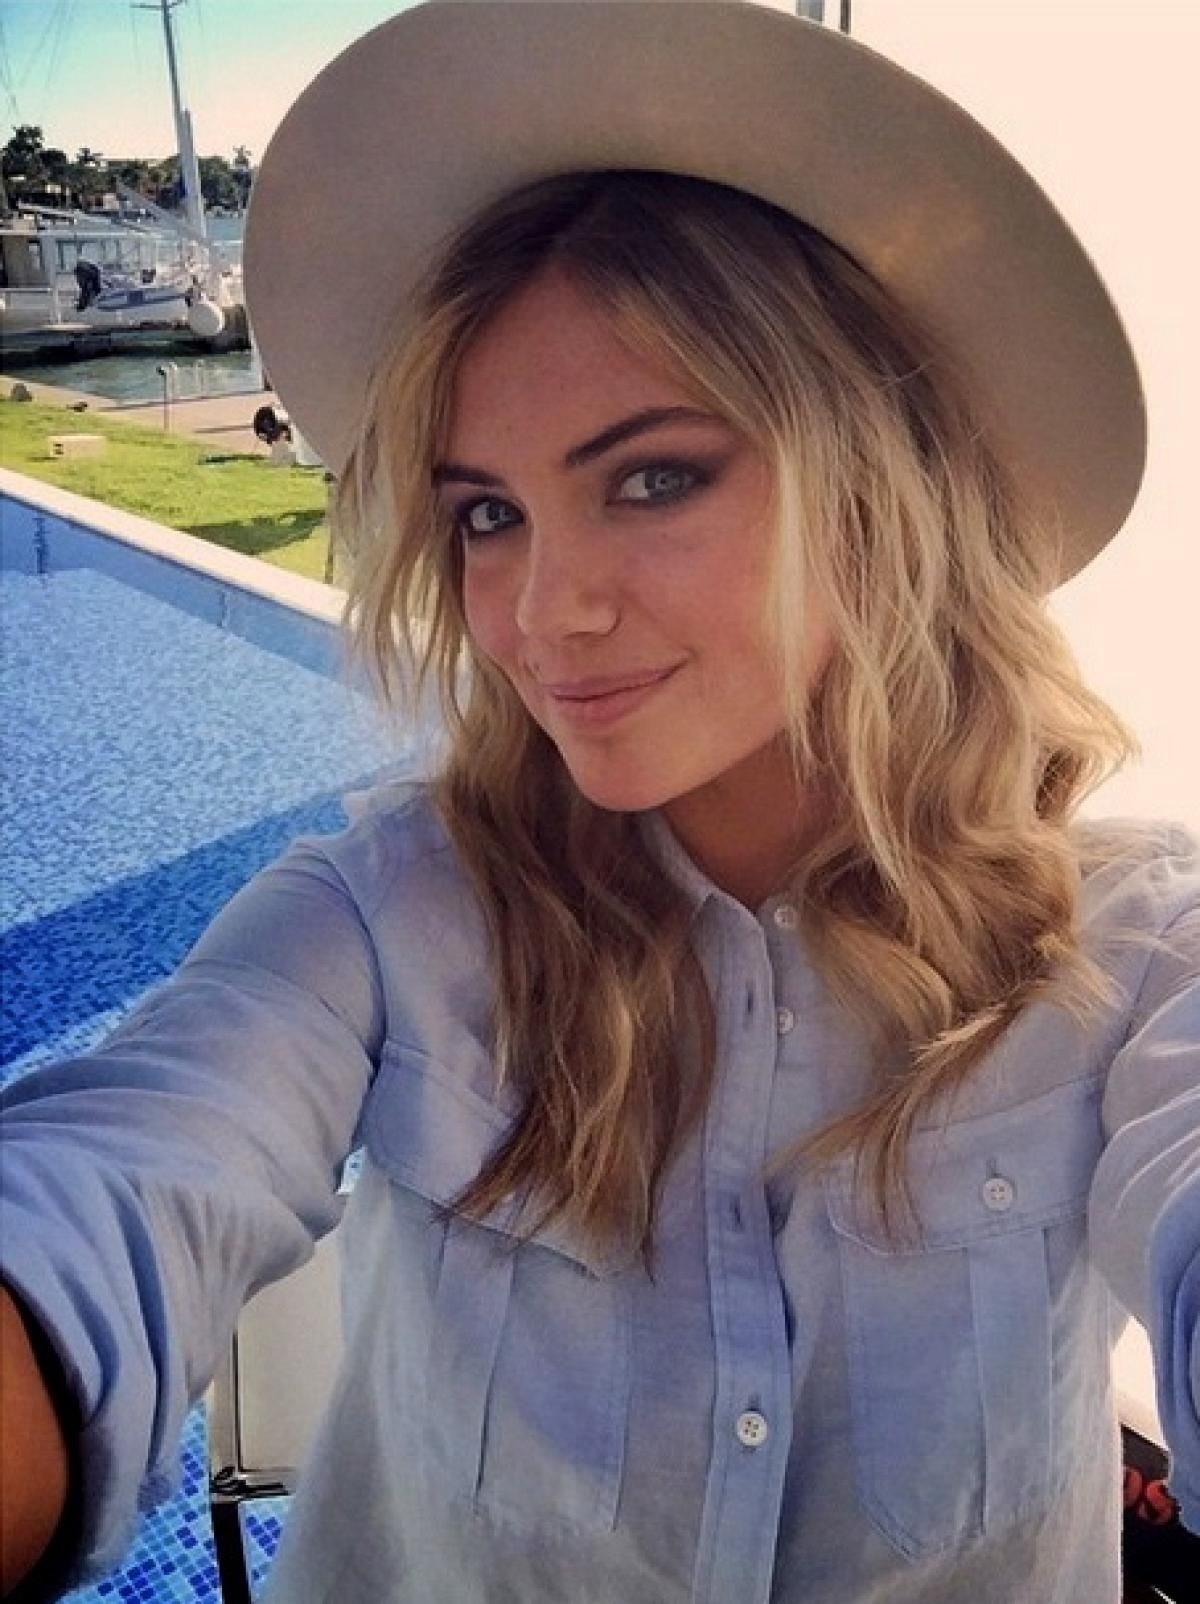 Selfie Kate Upton nude photos 2019